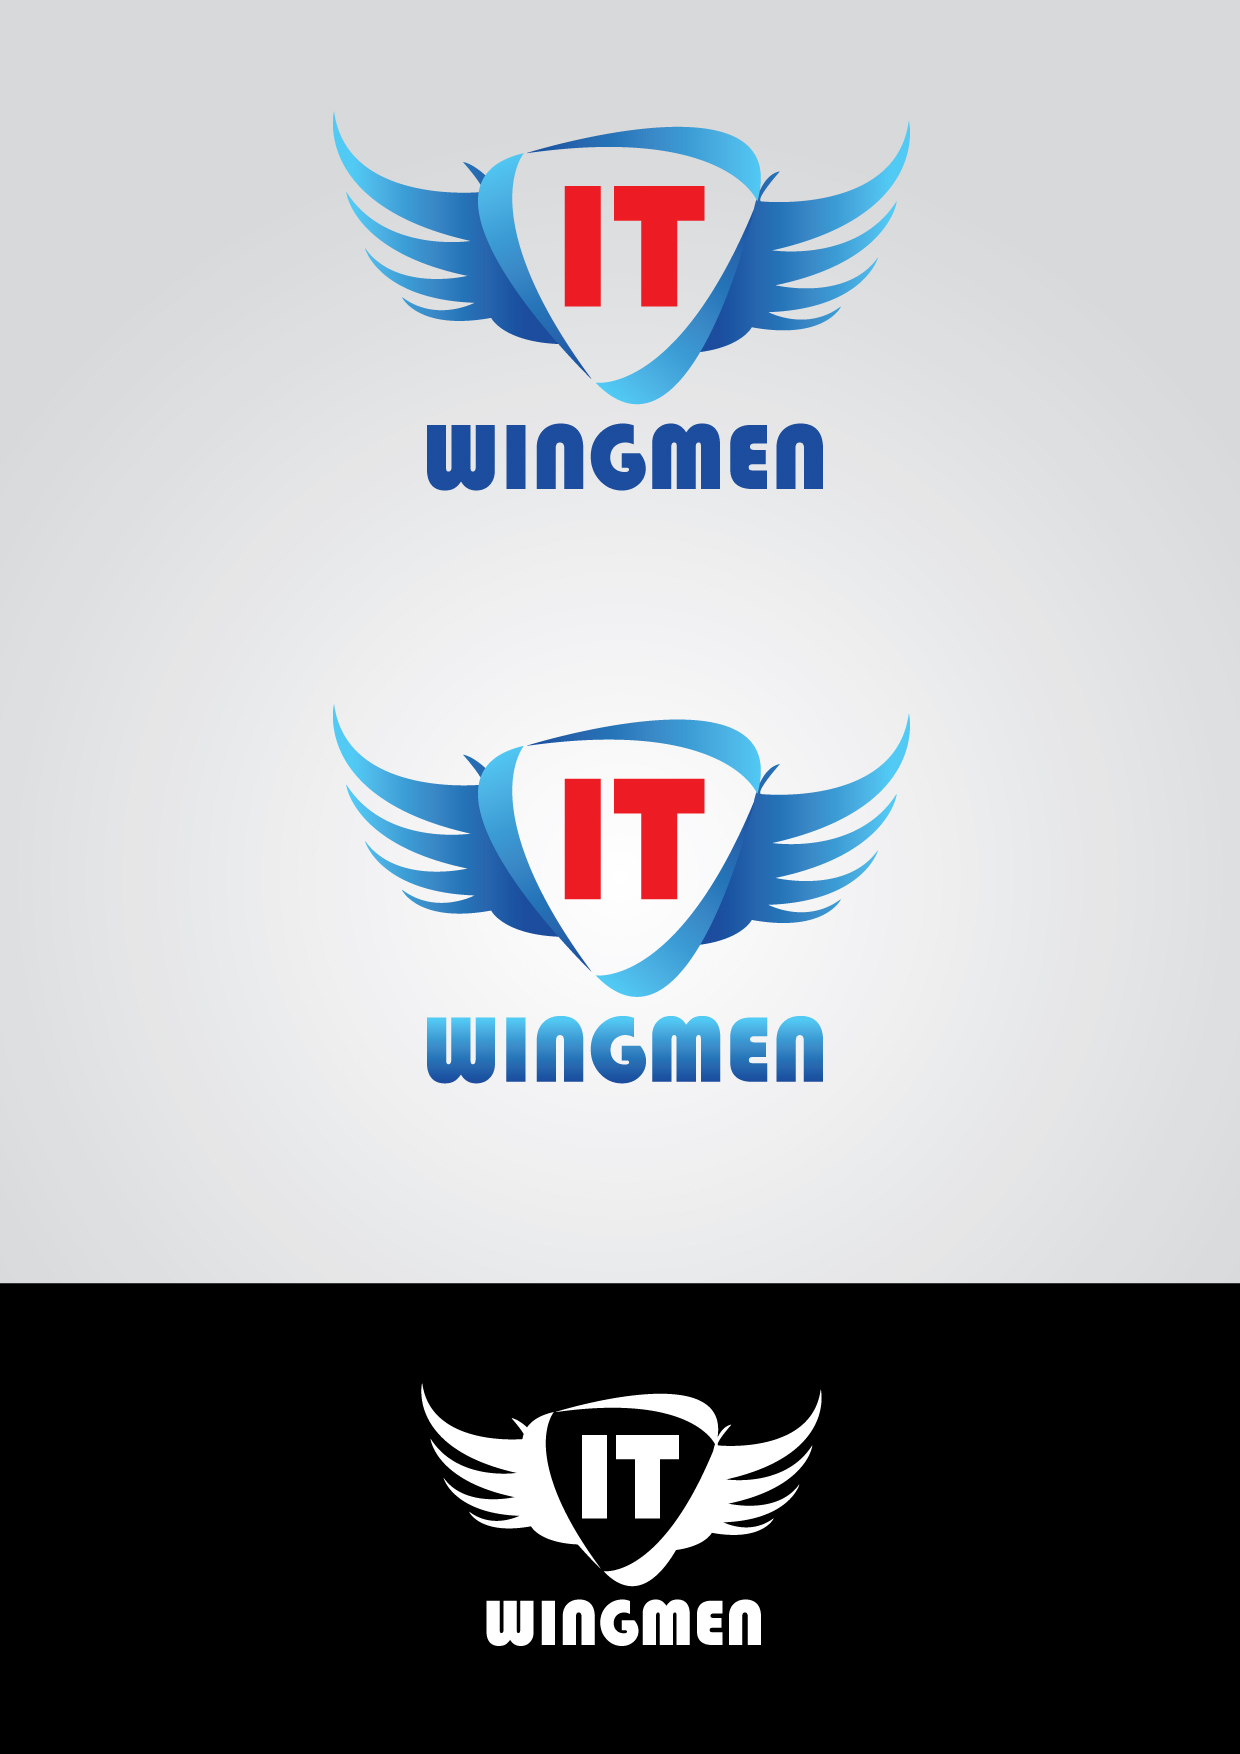 Logo Design by mediaproductionart - Entry No. 48 in the Logo Design Contest New Logo Design for IT Wingmen.